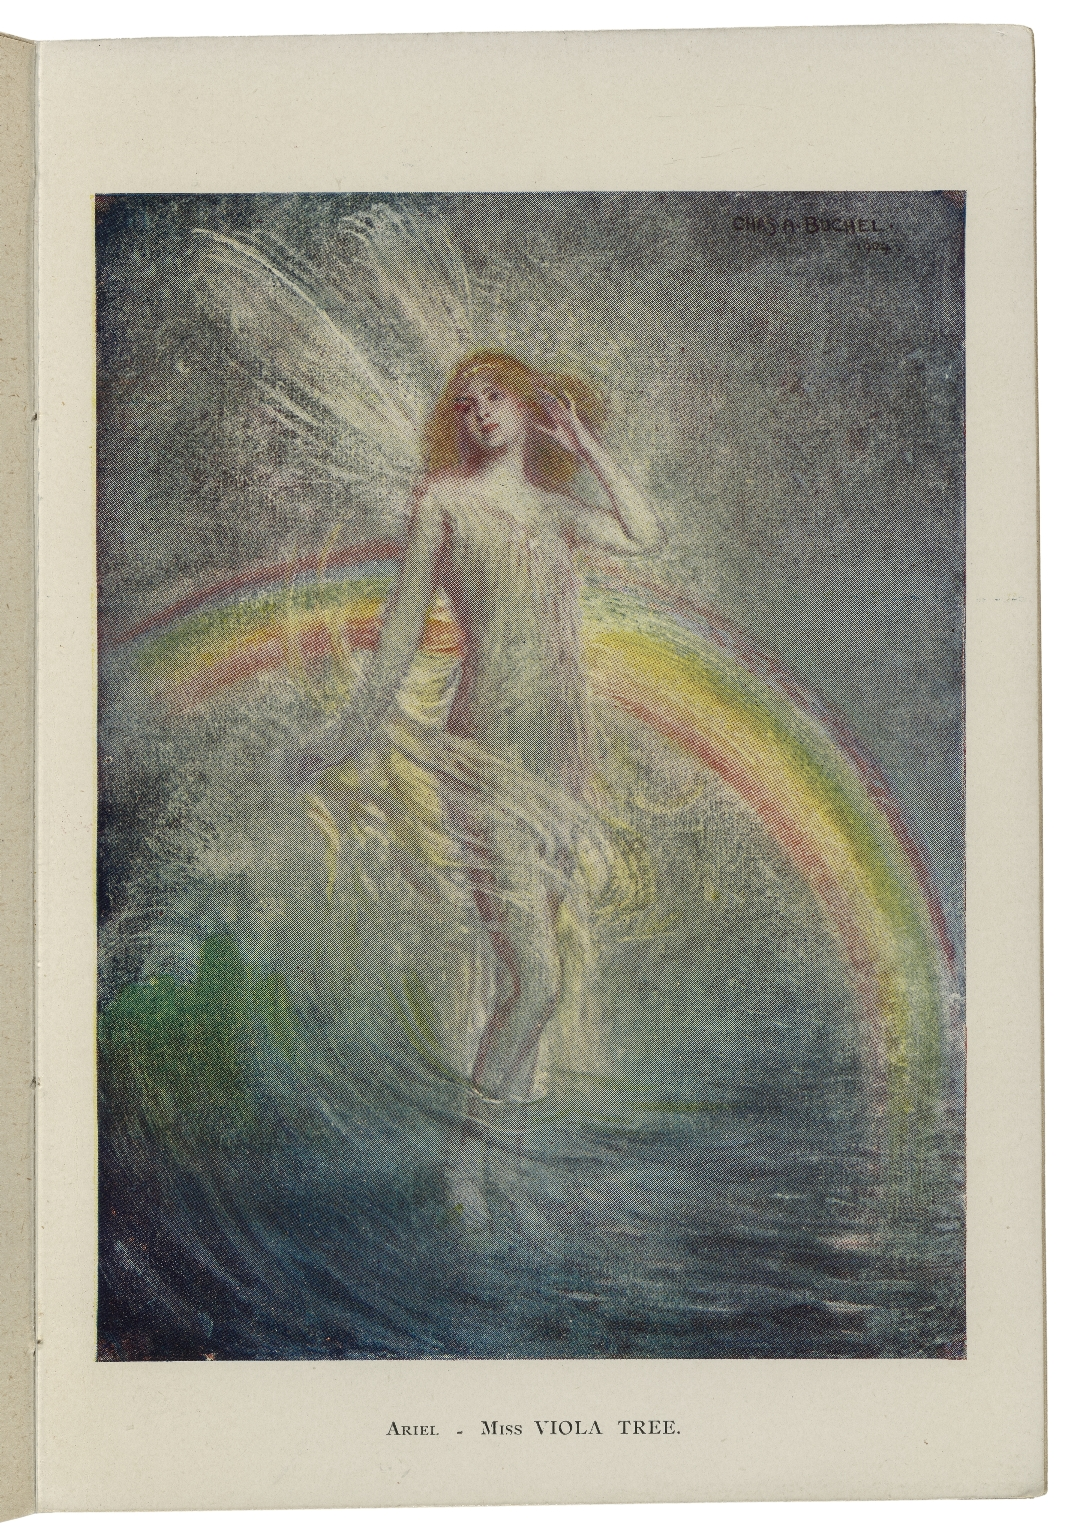 The tempest / as arranged for the stage by Herbert Beerbohm Tree ; with illustrations from original oil sketches by Charles A. Buchel.